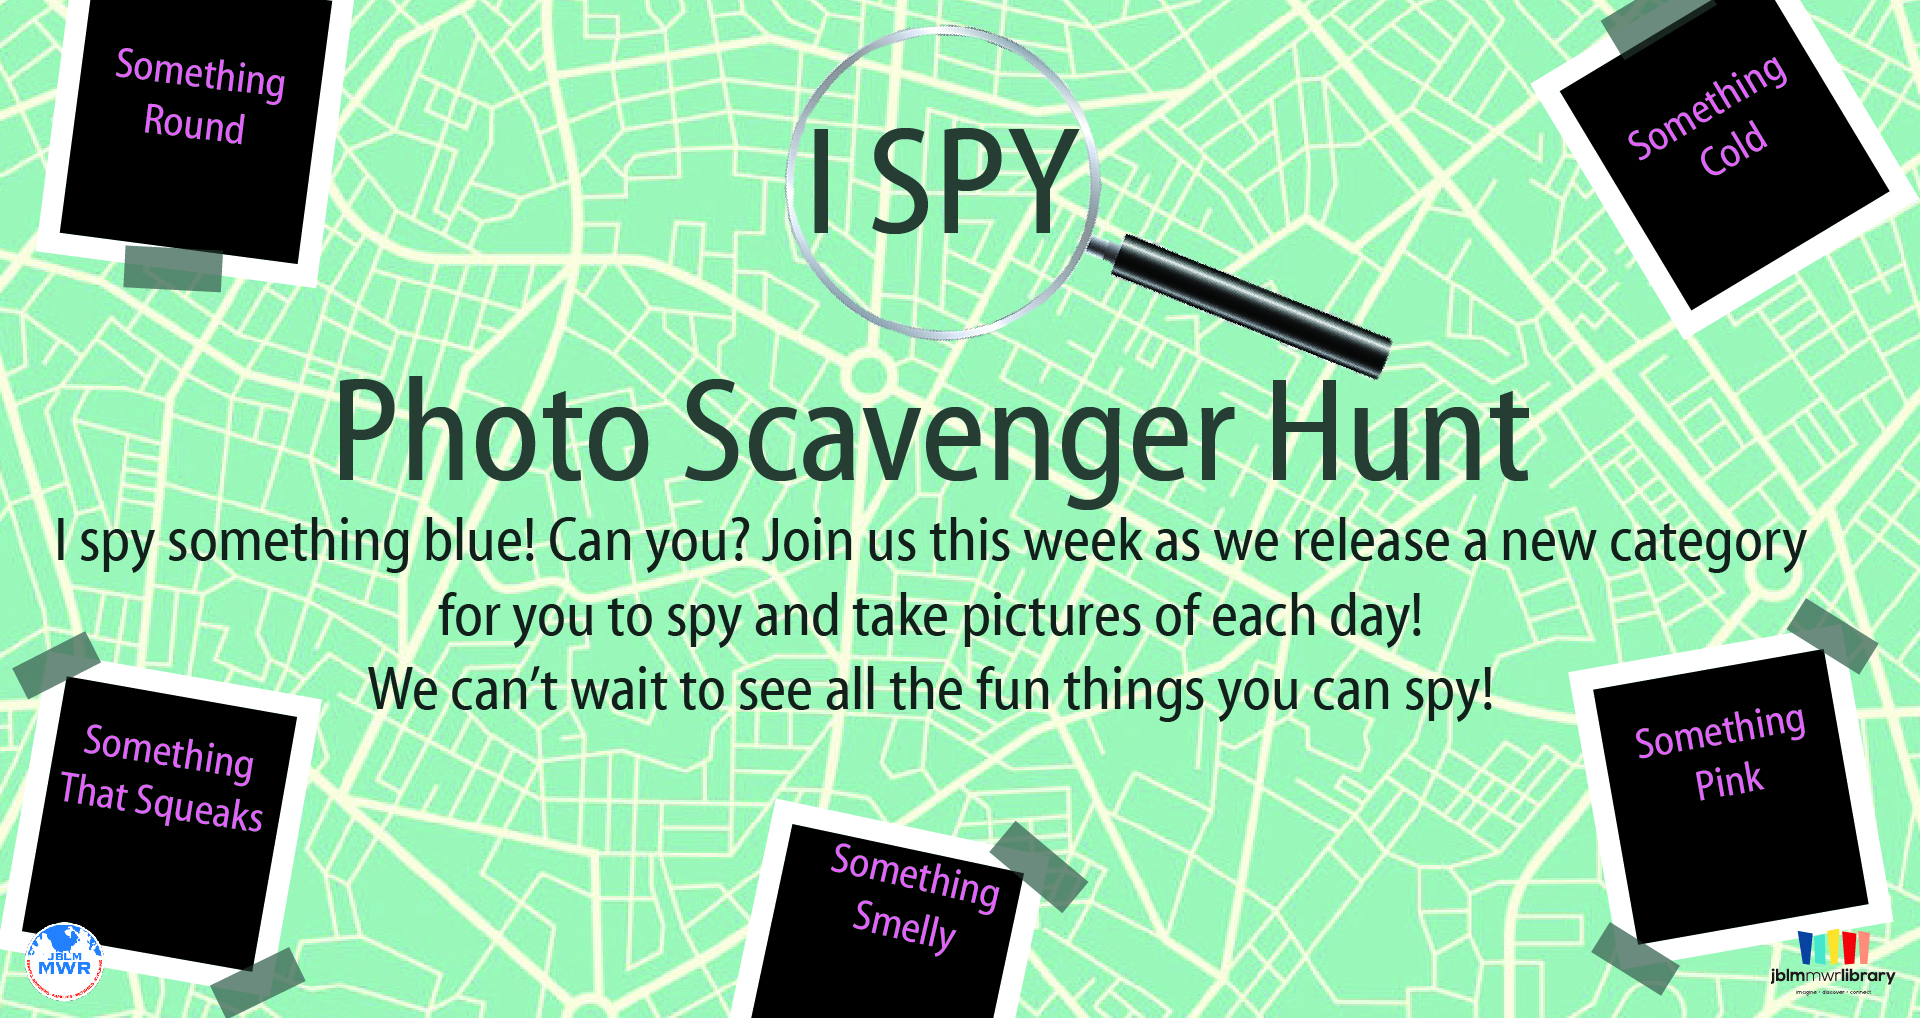 Virtual Summer Reading Program: I Spy Photo Scavenger Hunt